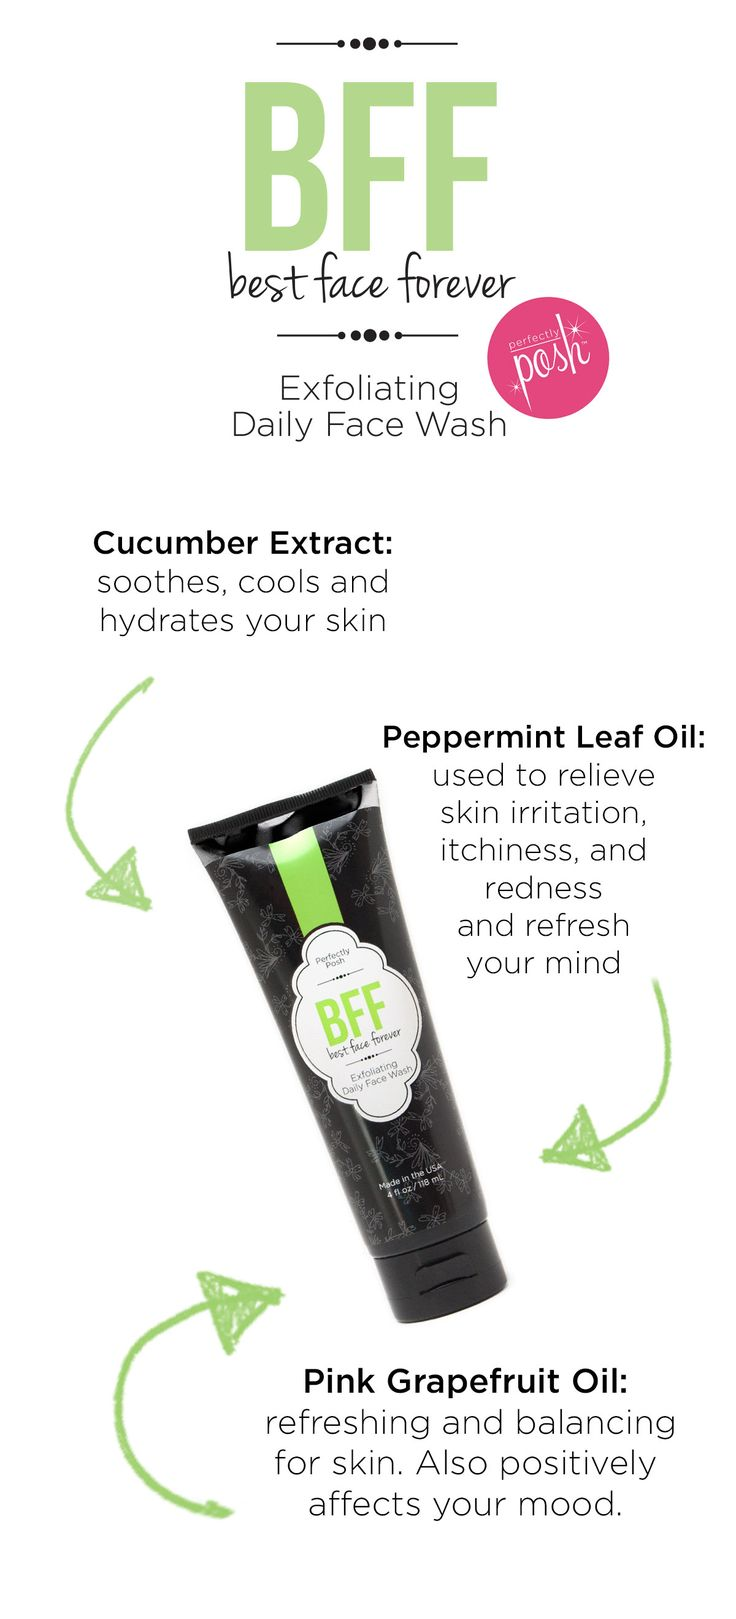 Best Face Forever!  Amazing ingredients: Cucumber, Aloe, Grapefruit and Peppermint Essential Oil.  Exfoliates, cleanses, and lifts your mood as you cleanse.  Made in the U.S.A.